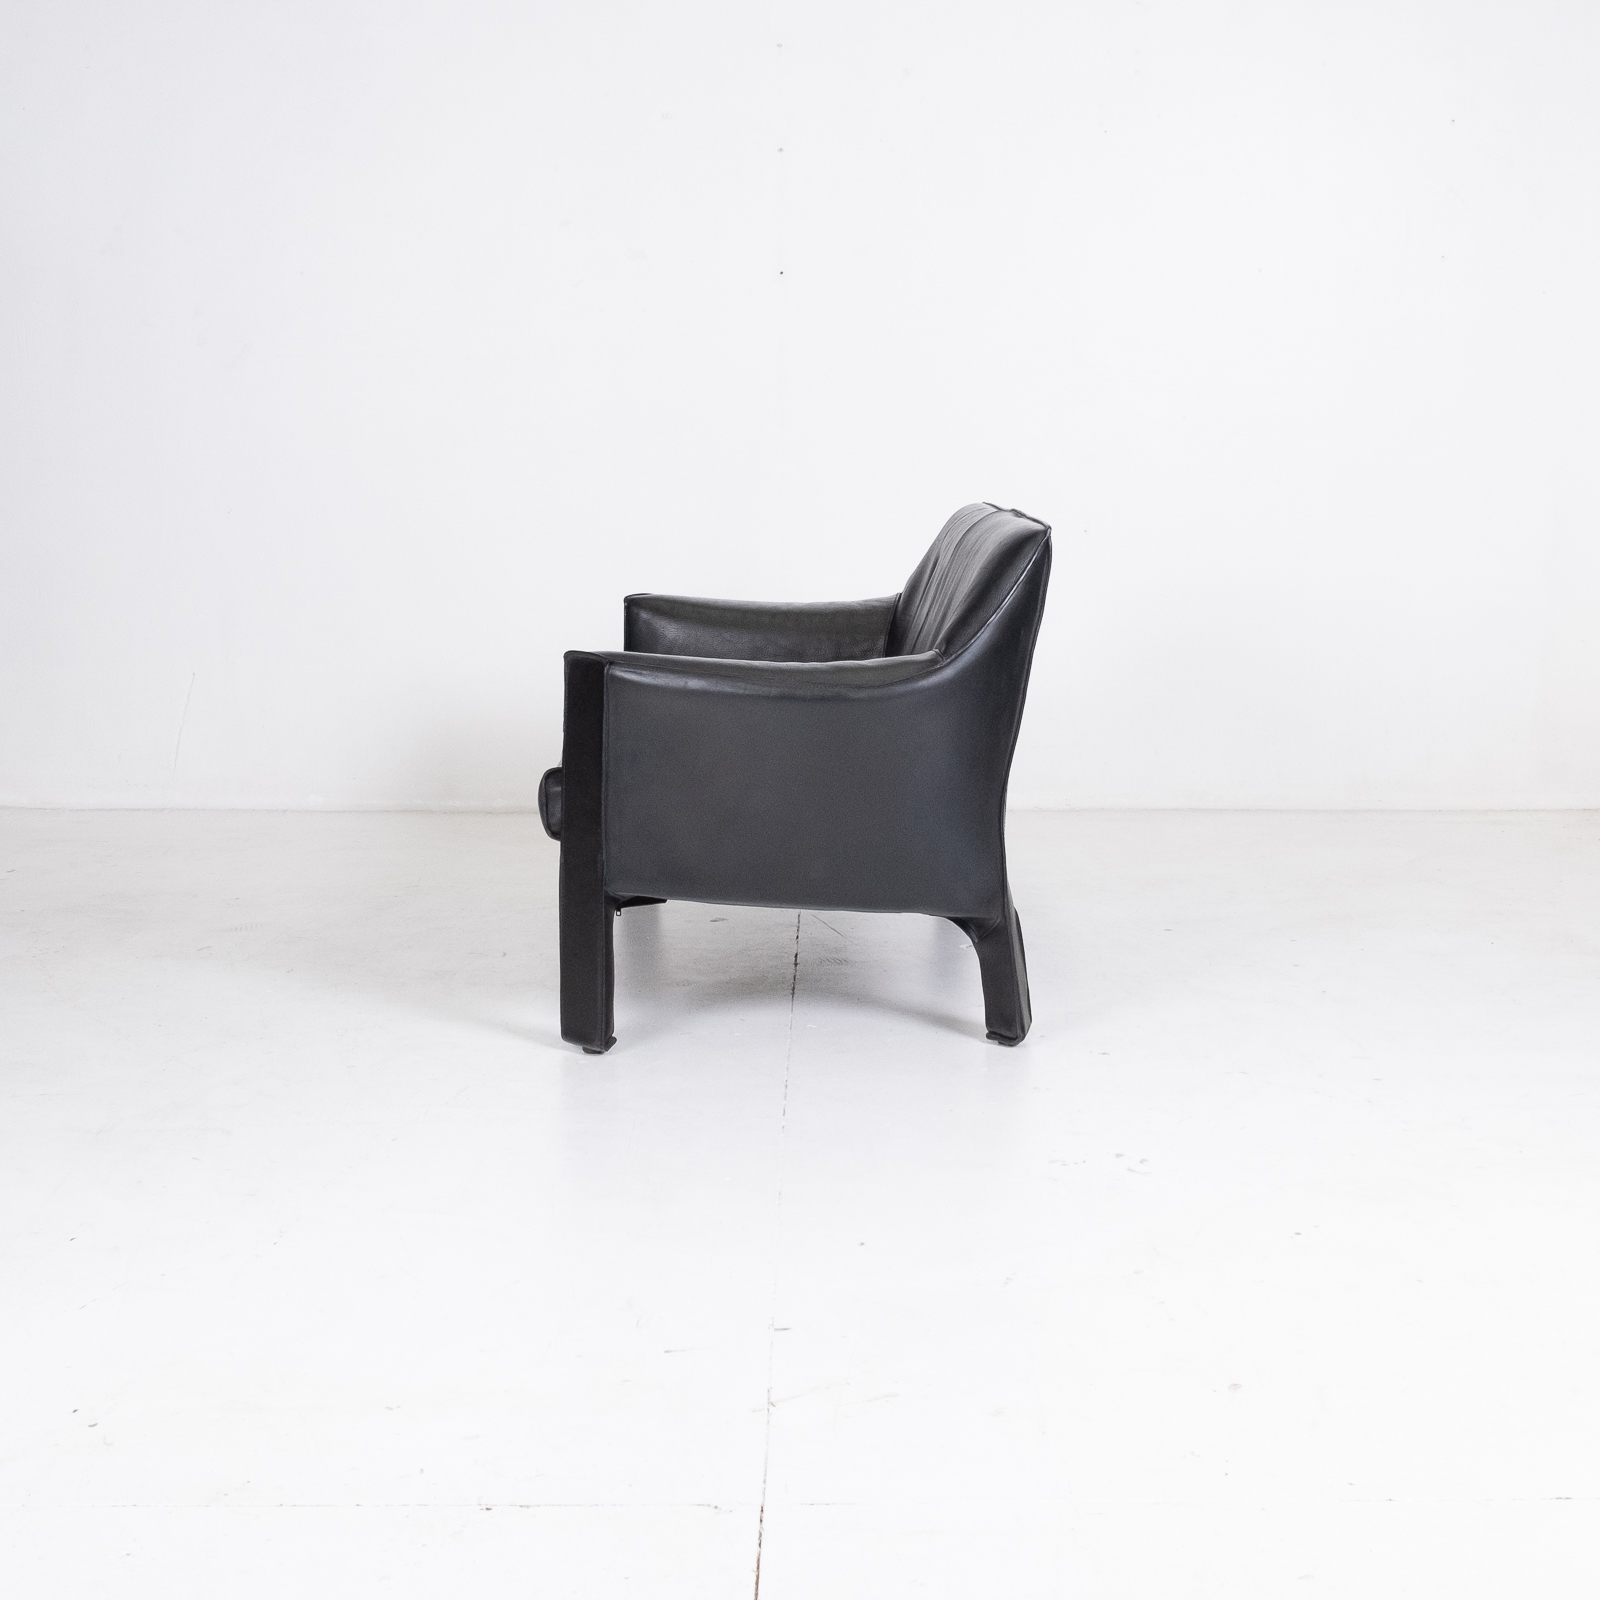 Model 415 Cab 2 Seat Sofa By Mario Bellini For Cassina In Black Leather, 1987, Italy 00004